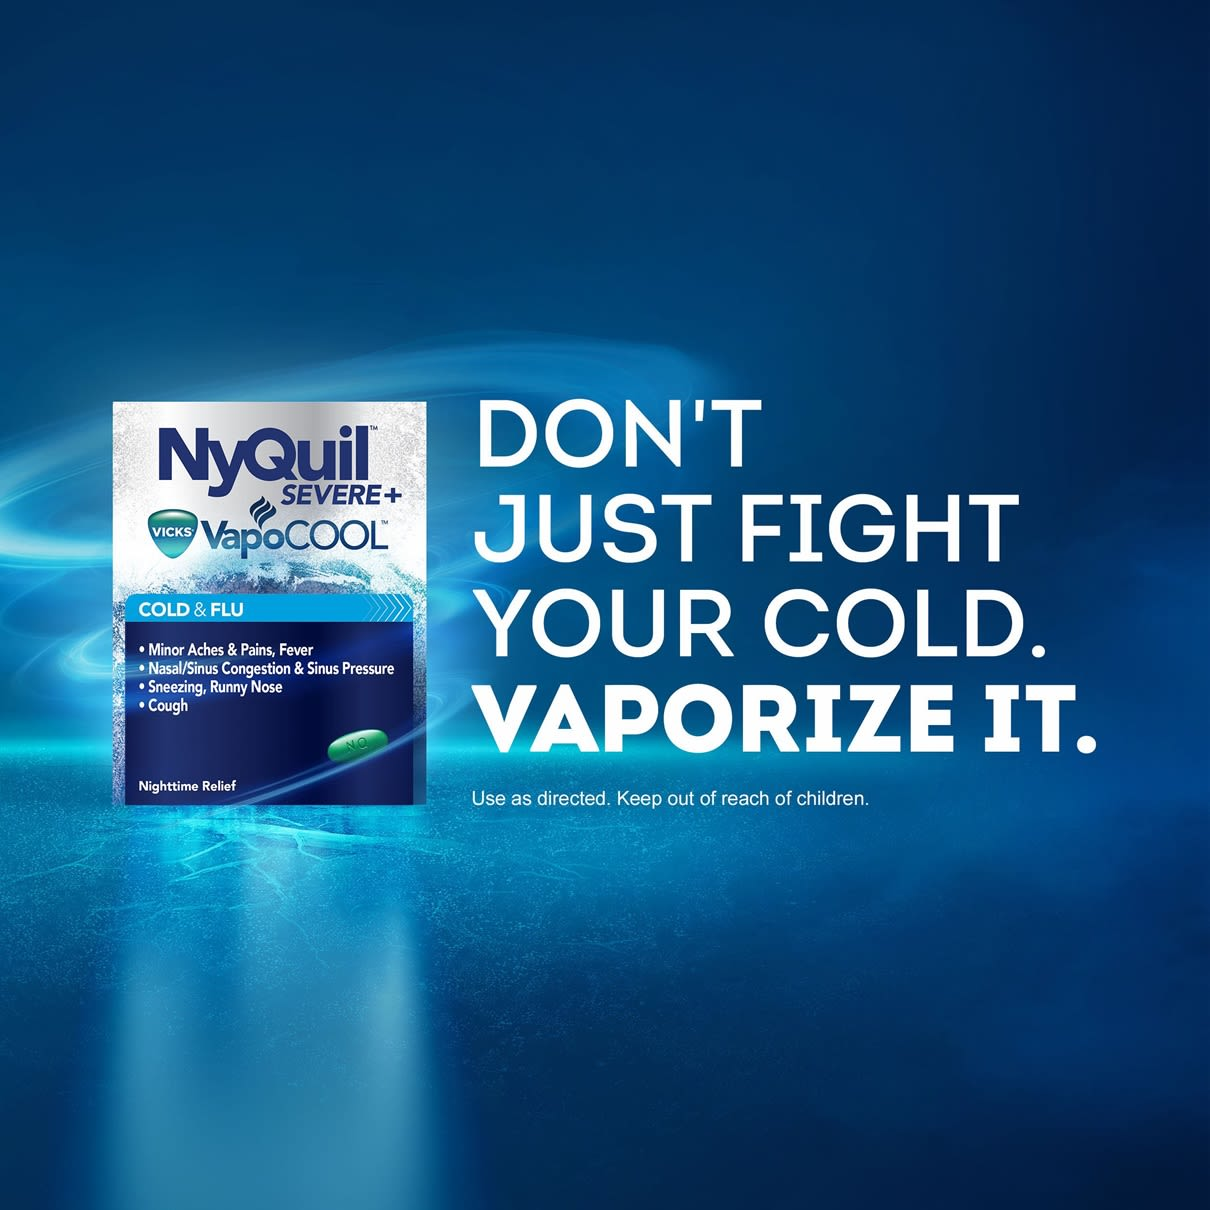 dont-just-fight-your-cold-vaporize-it